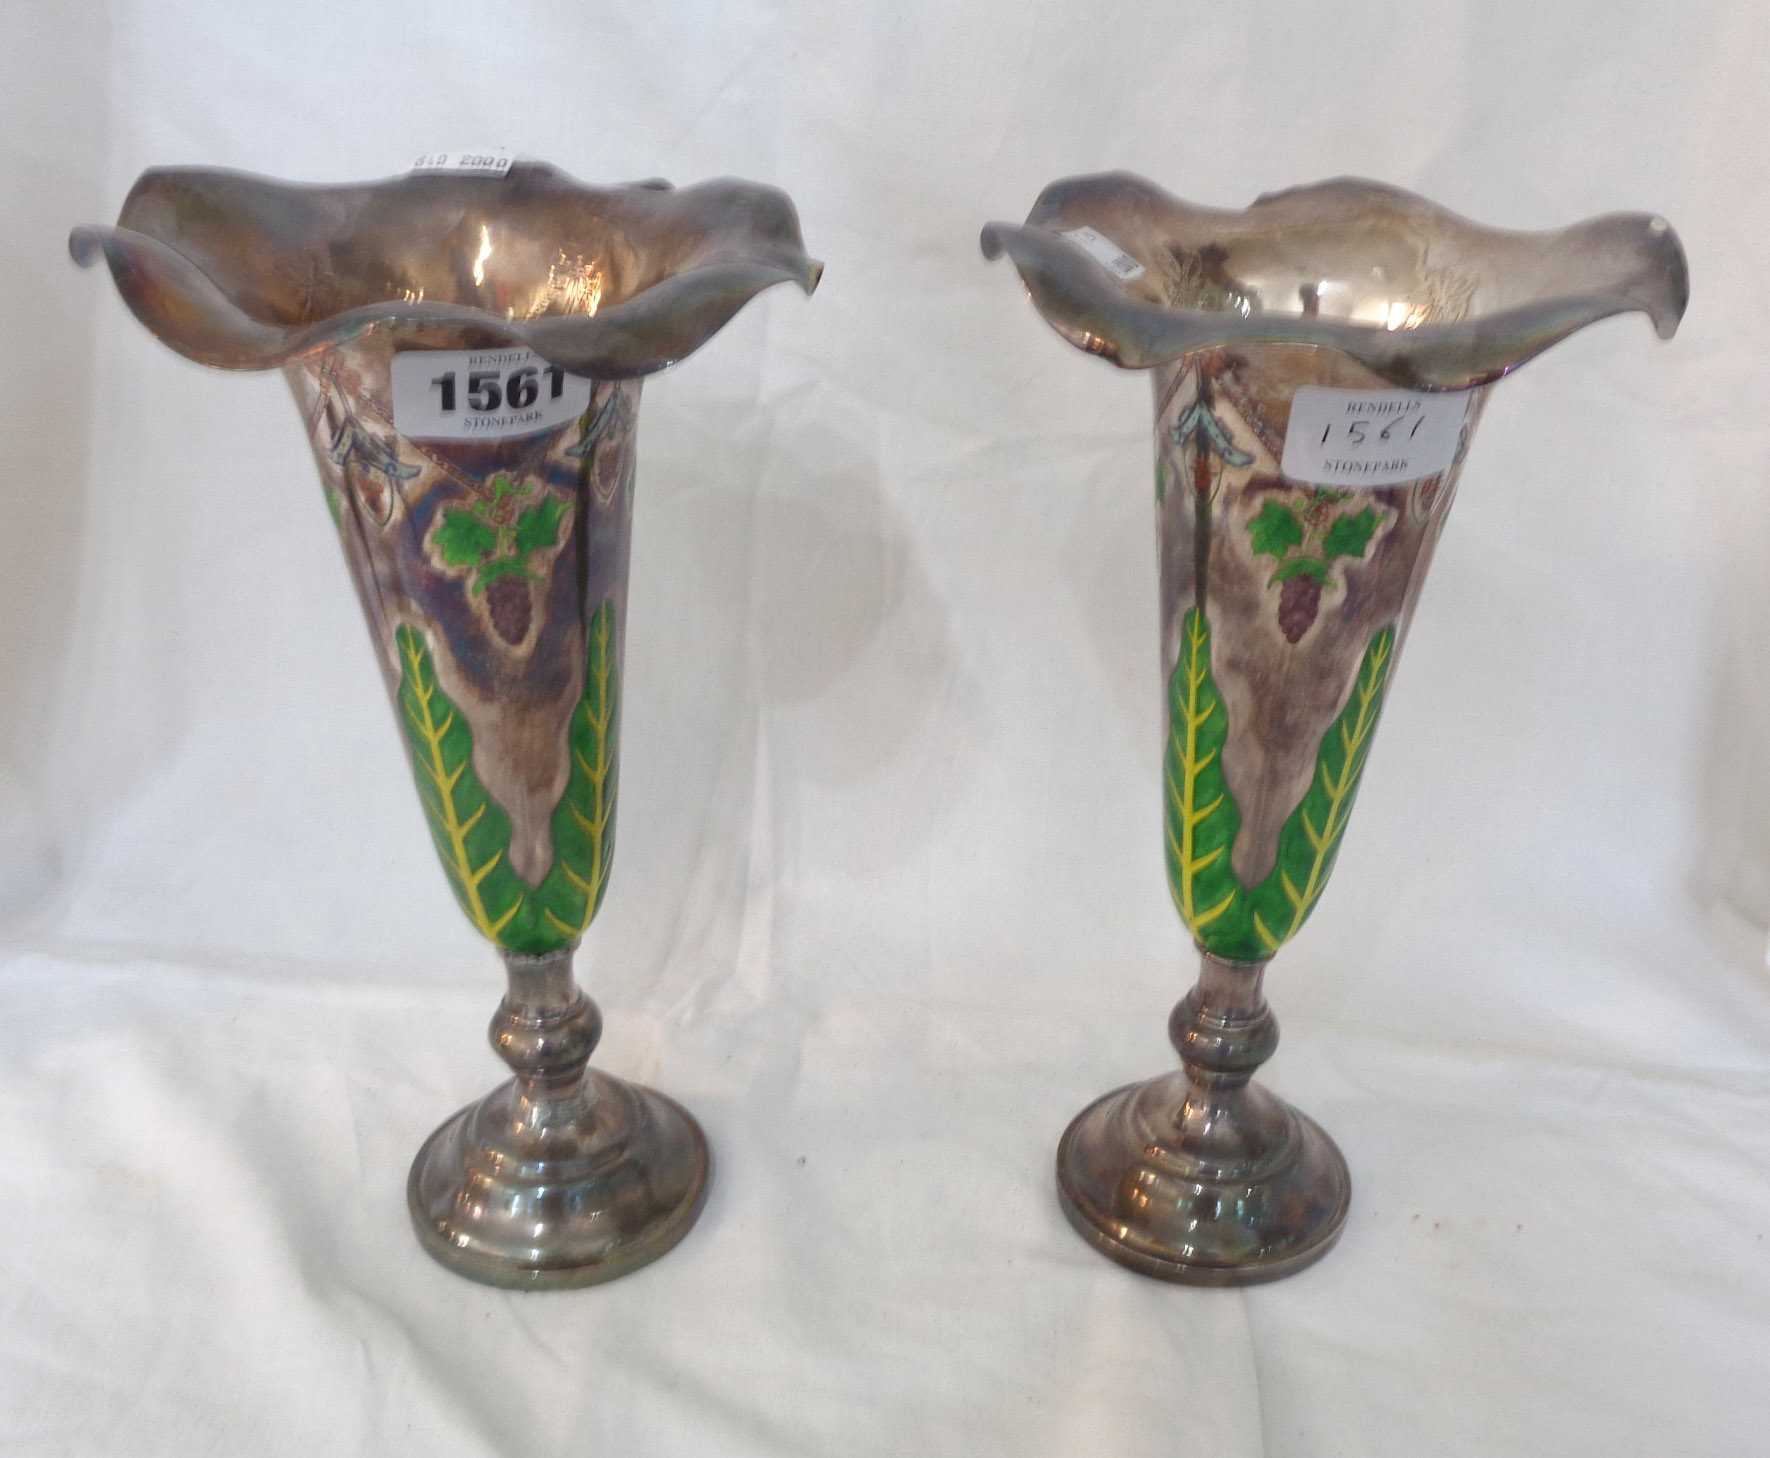 A pair of 25.5cm high Chinese white metal vases with enamelled foliage, grapes and motifs - rims